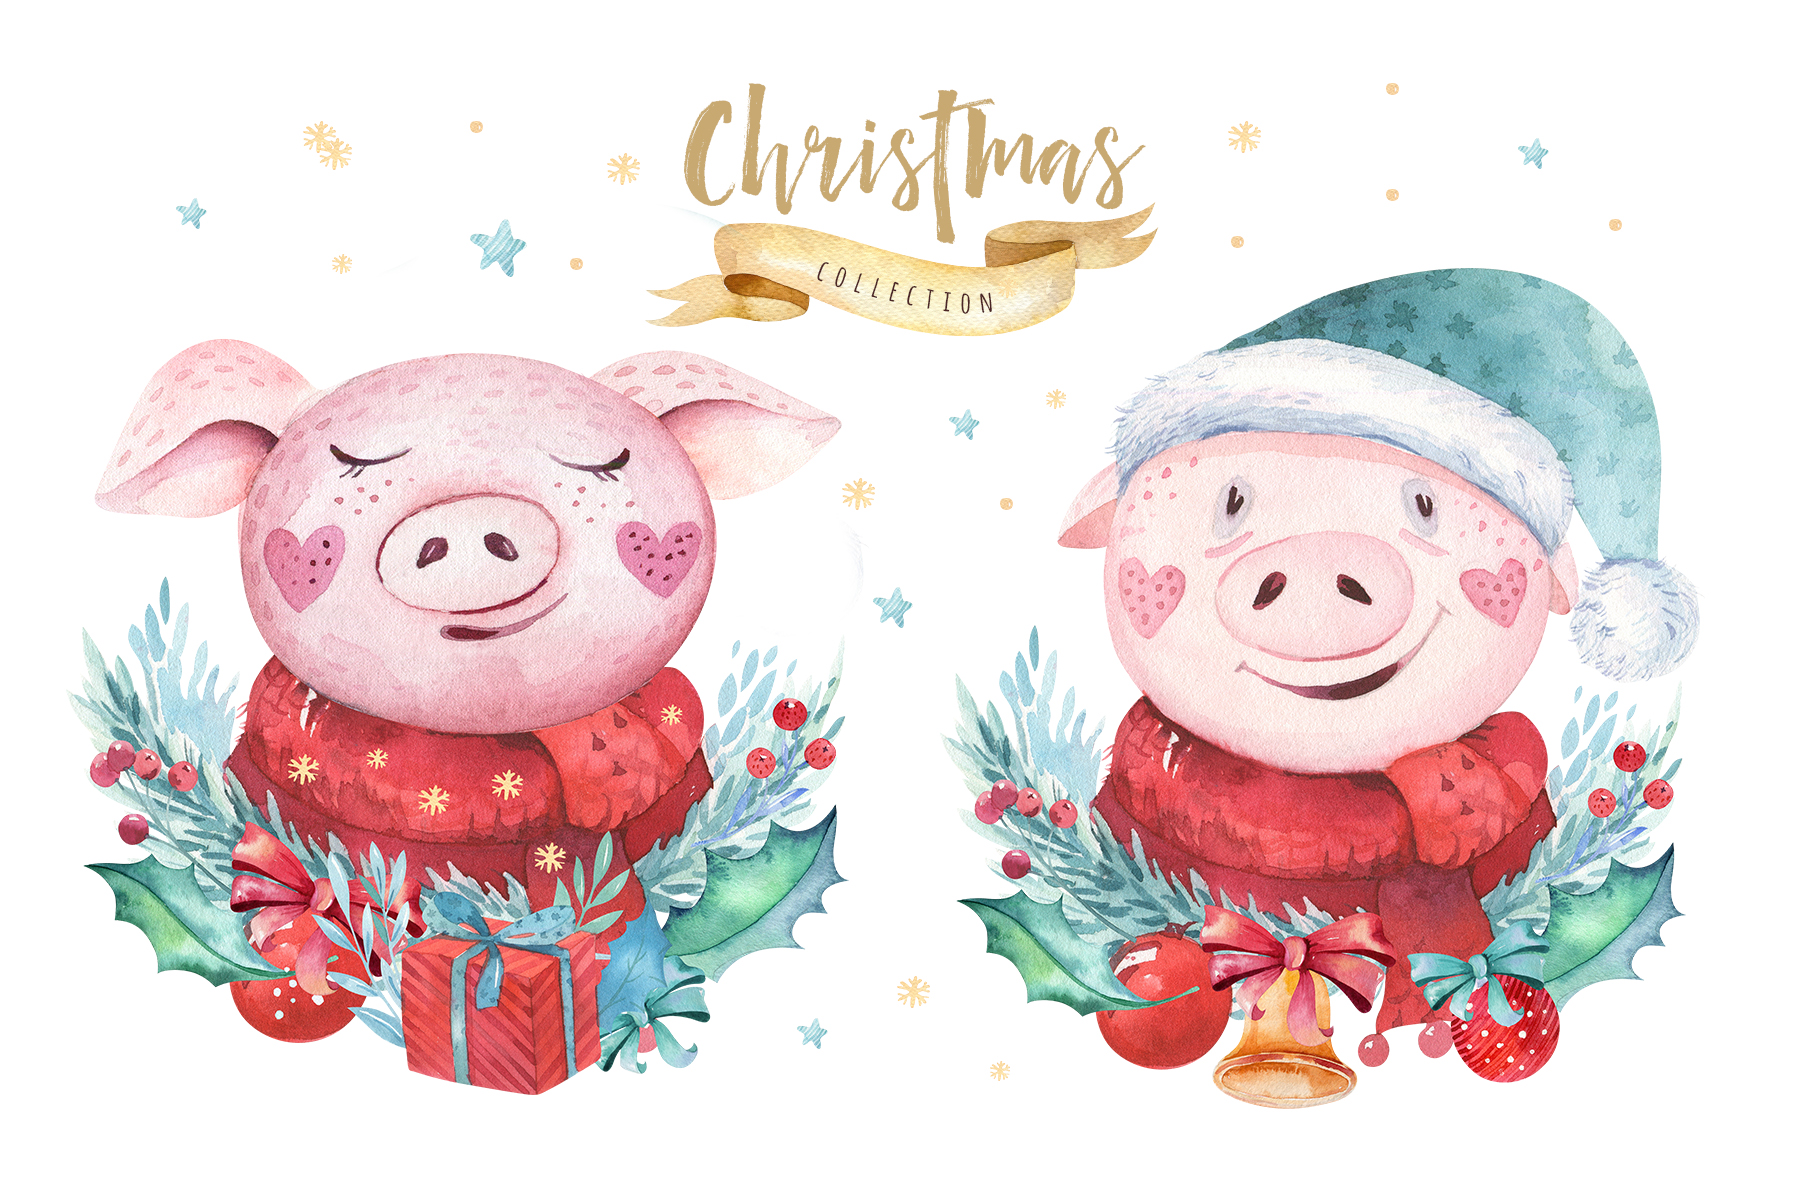 Oink! 2019... This is my year! example image 2